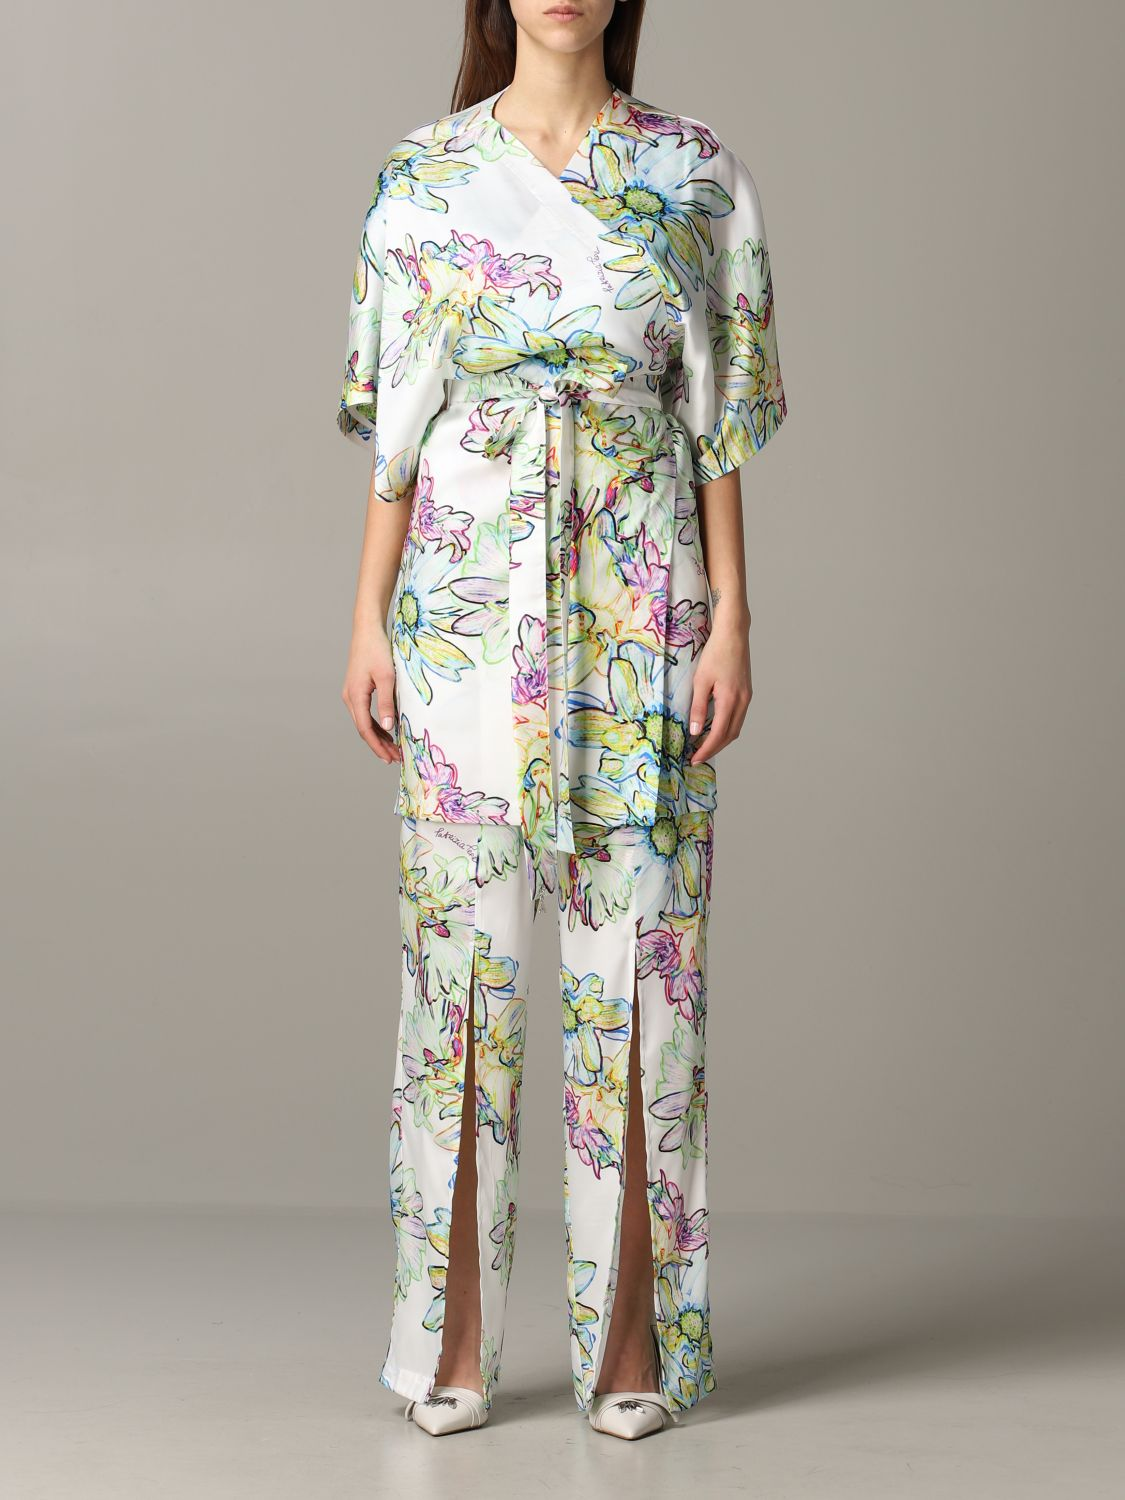 Patrizia Pepe jumpsuit in floral patterned satin white 1